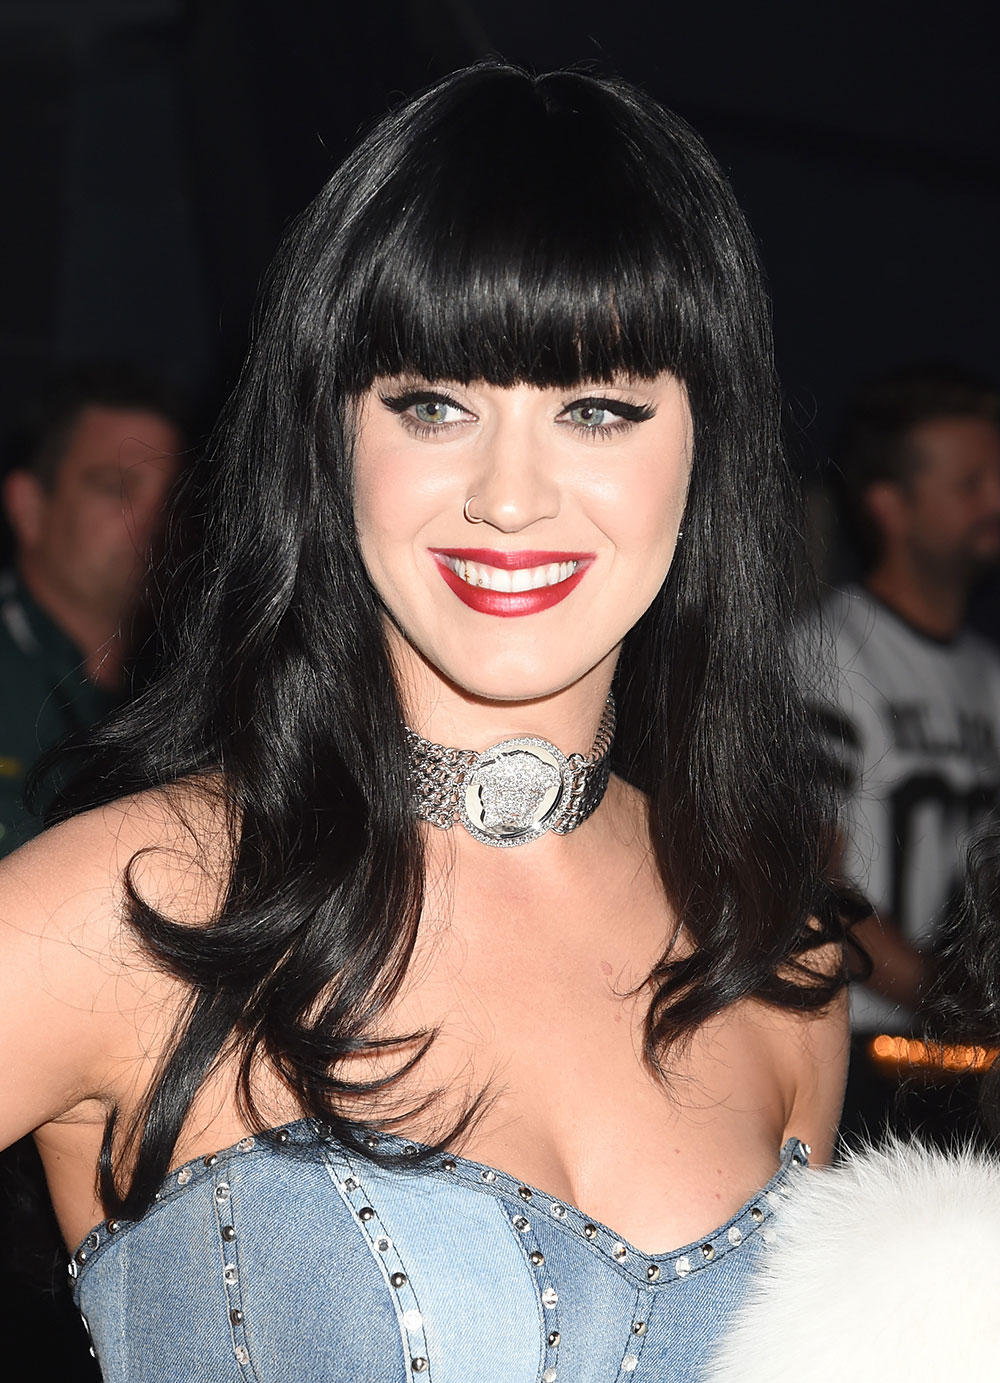 Katy Perry Makeup look at 2014 Video Music Awards